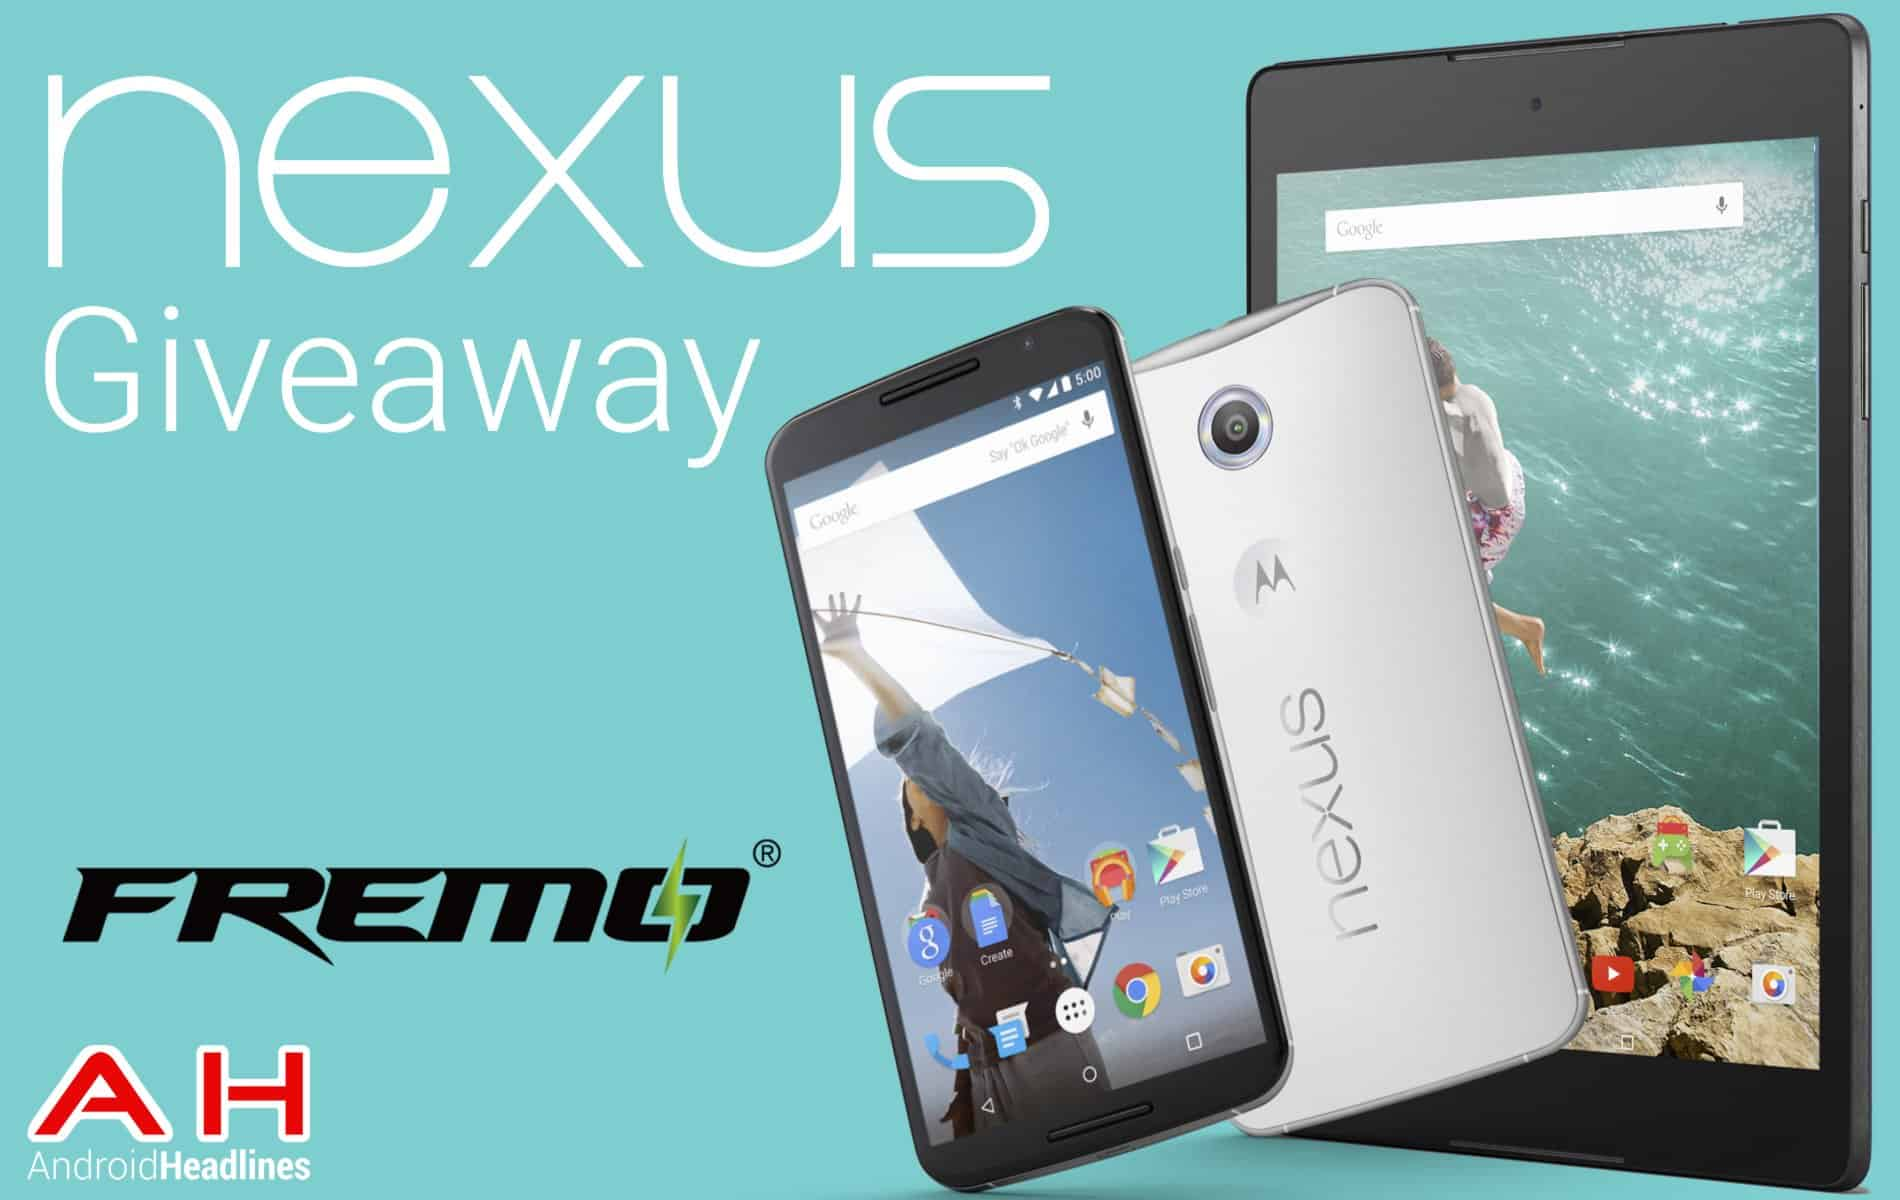 Fremo AH Nexus 6 and Nexus 9 Contest